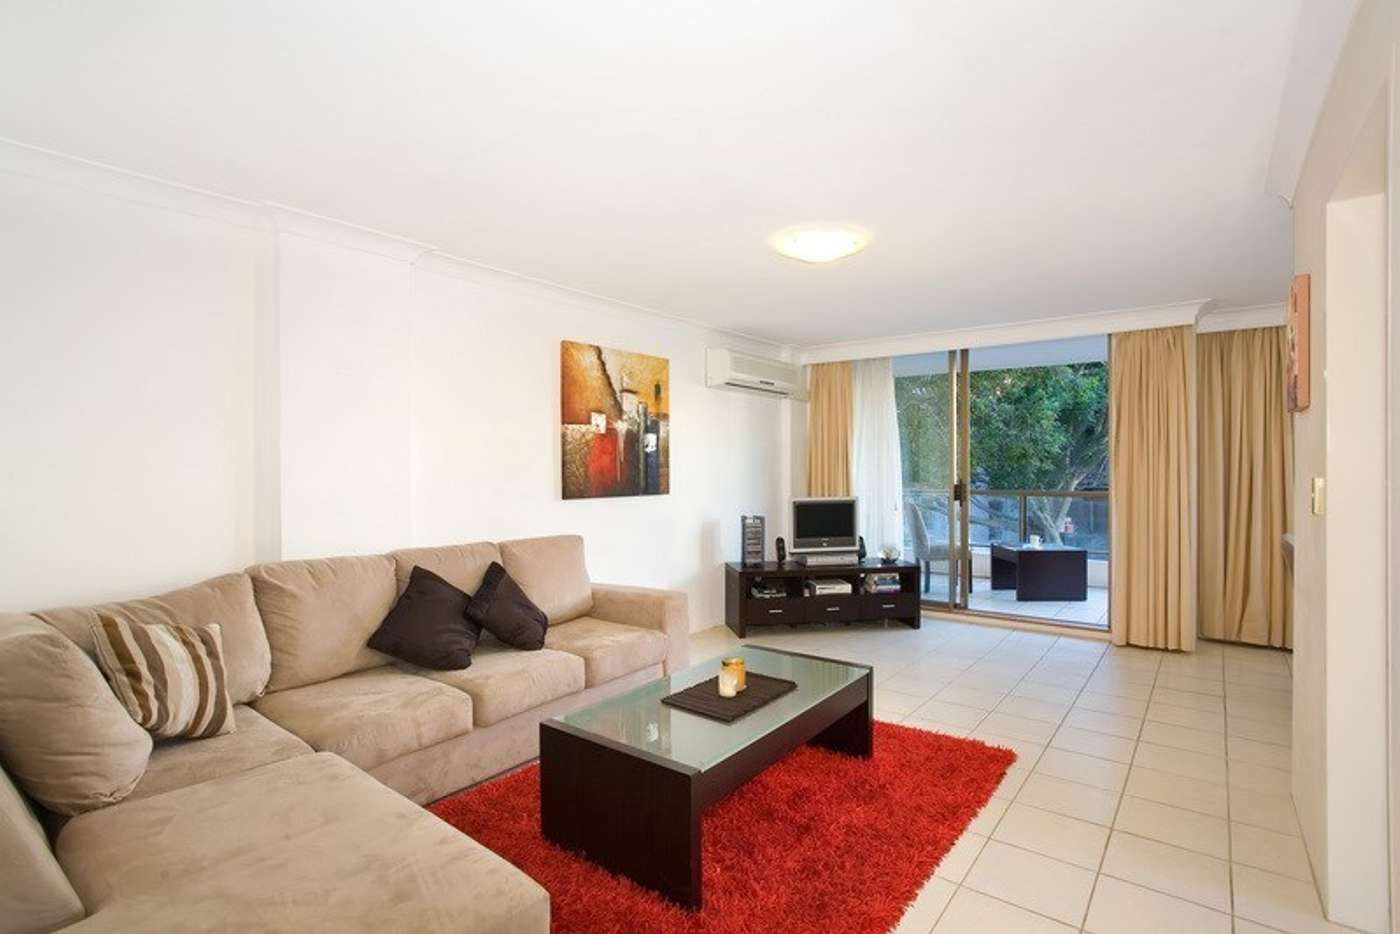 Main view of Homely apartment listing, 4/33 Waratah Street, Rushcutters Bay NSW 2011